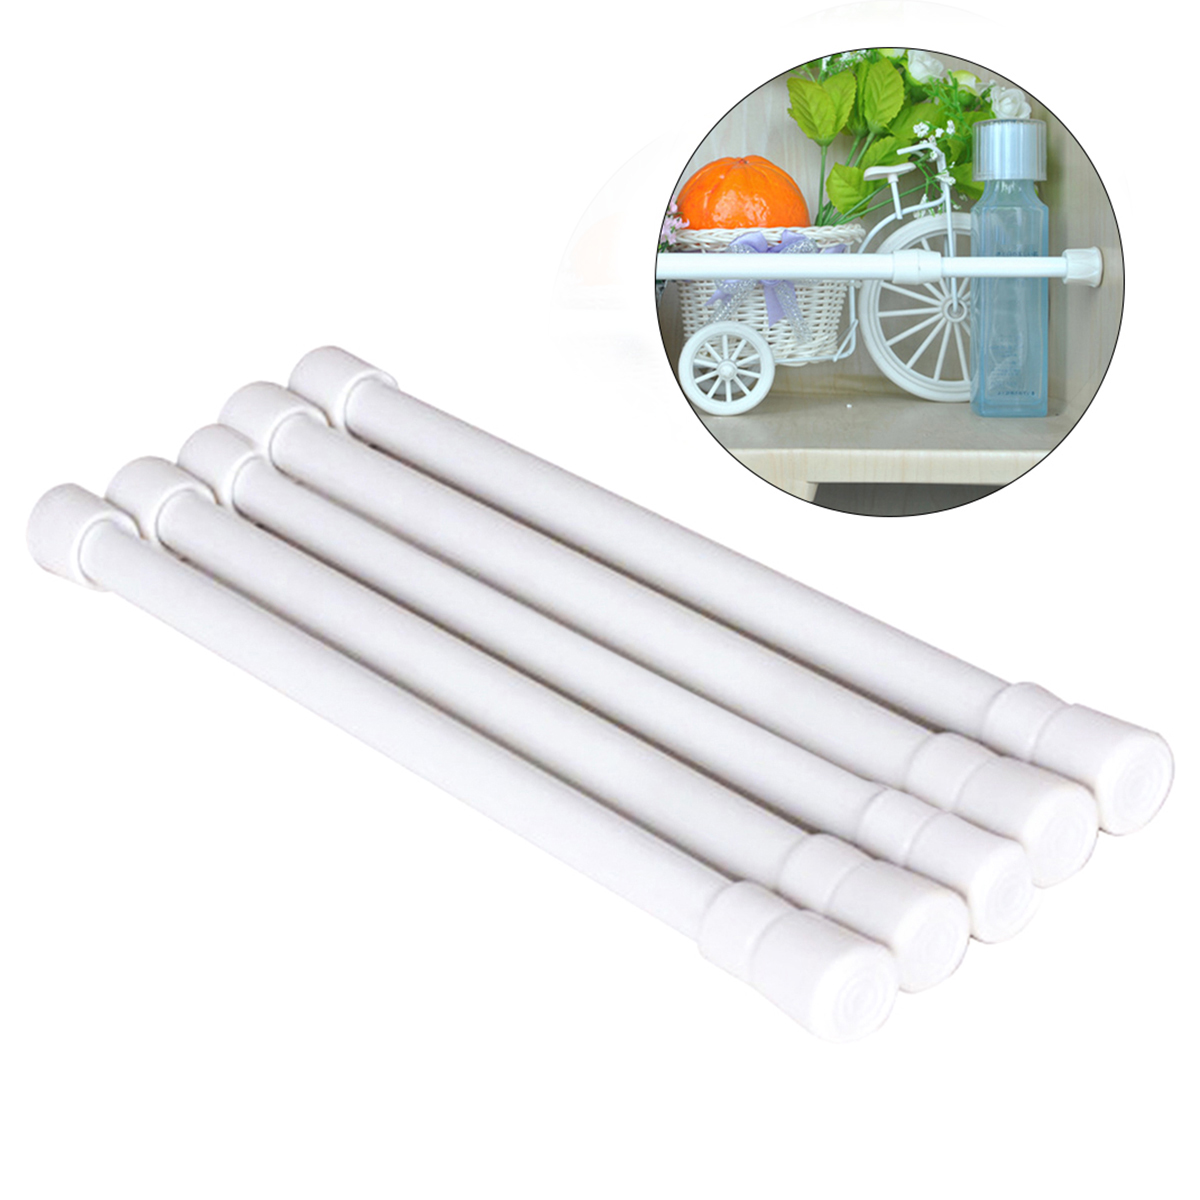 Extendable Shower Curtain Rod Us 9 54 43 Off 5 Pcs Bathroom Shower Curtain Rod Adjustable Shower Curtain Tension Rod Extendable Bath Curtain Pole In Shower Curtain Poles From